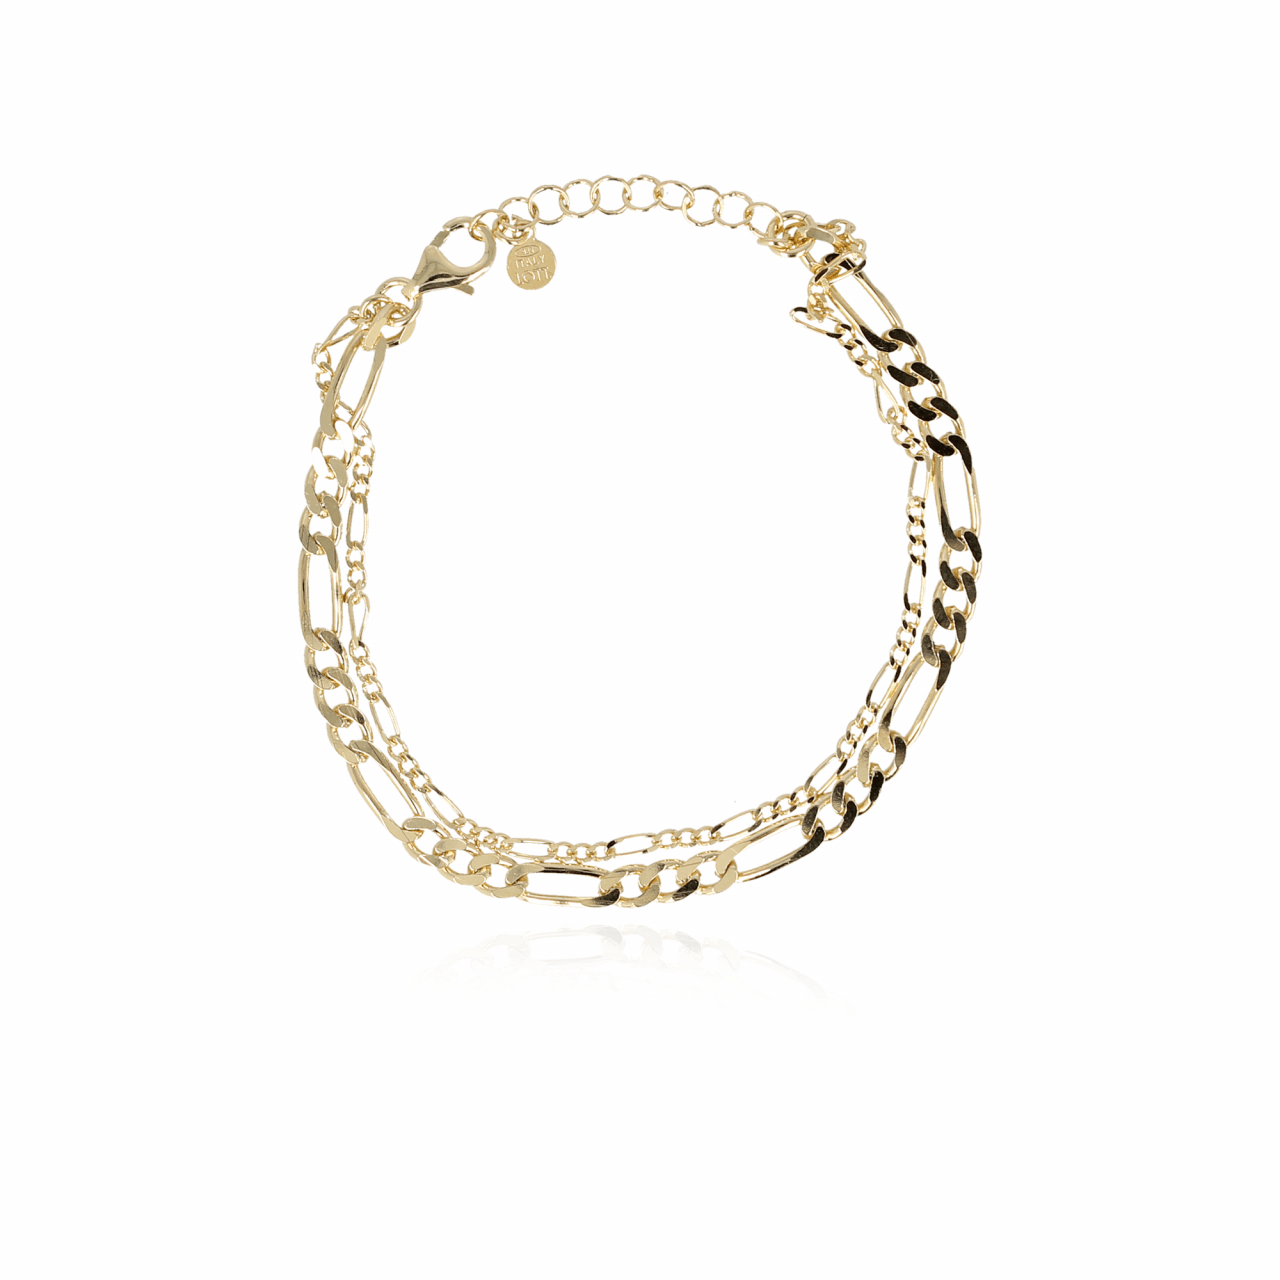 Gouden classic vintage double chain armband